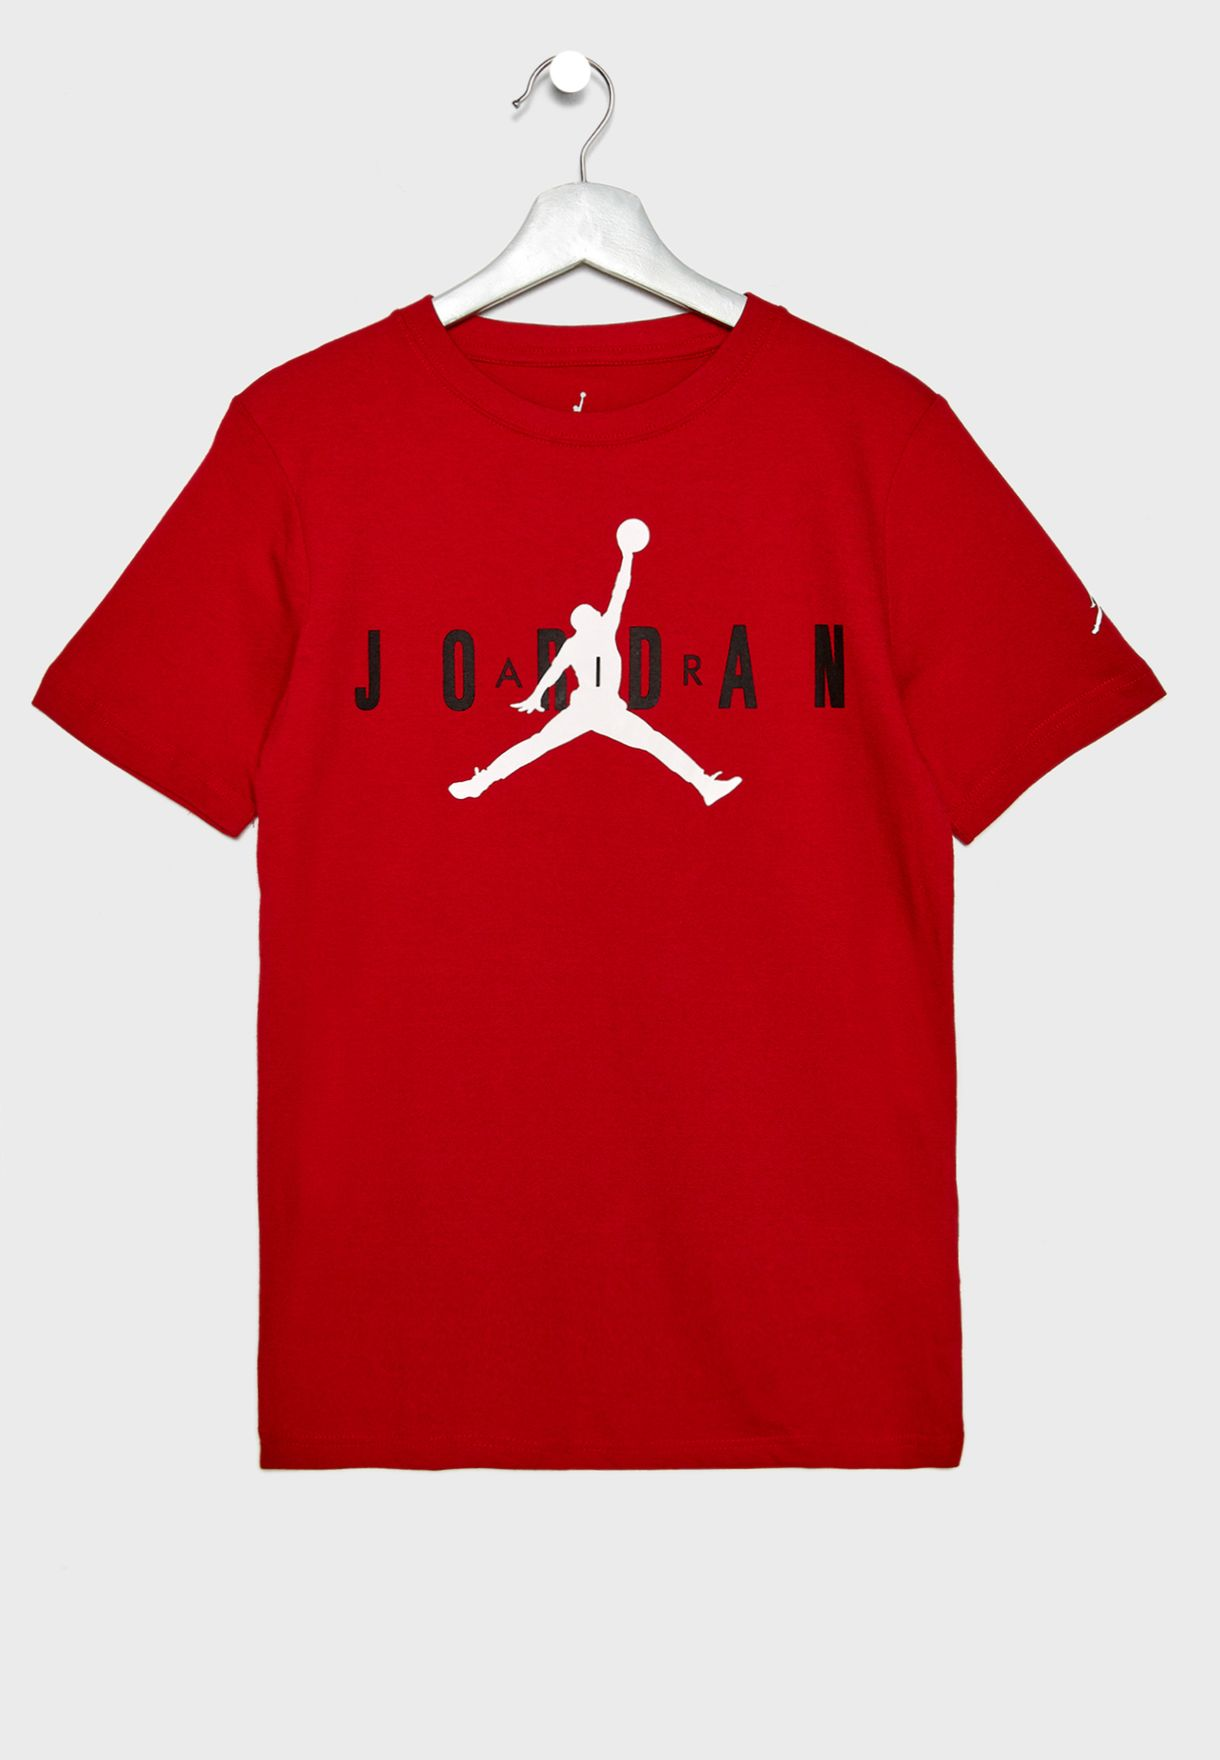 0a1820f3e9c Shop Nike red Youth Jordan T-Shirt 955175-R78 for Kids in UAE ...